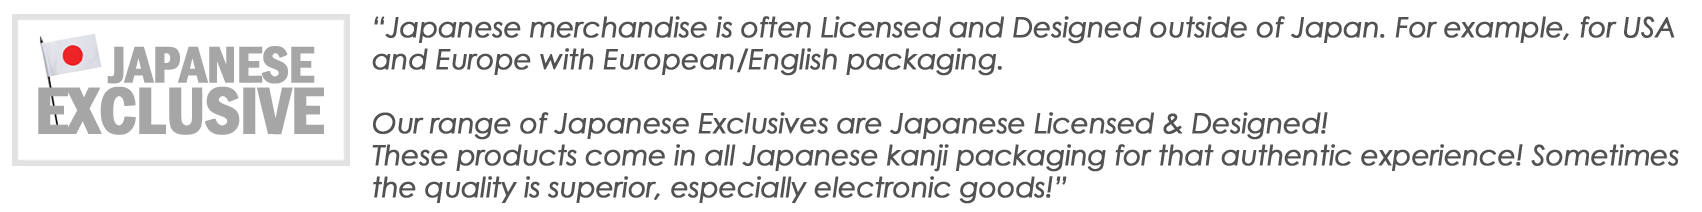 Japanese Exclusive